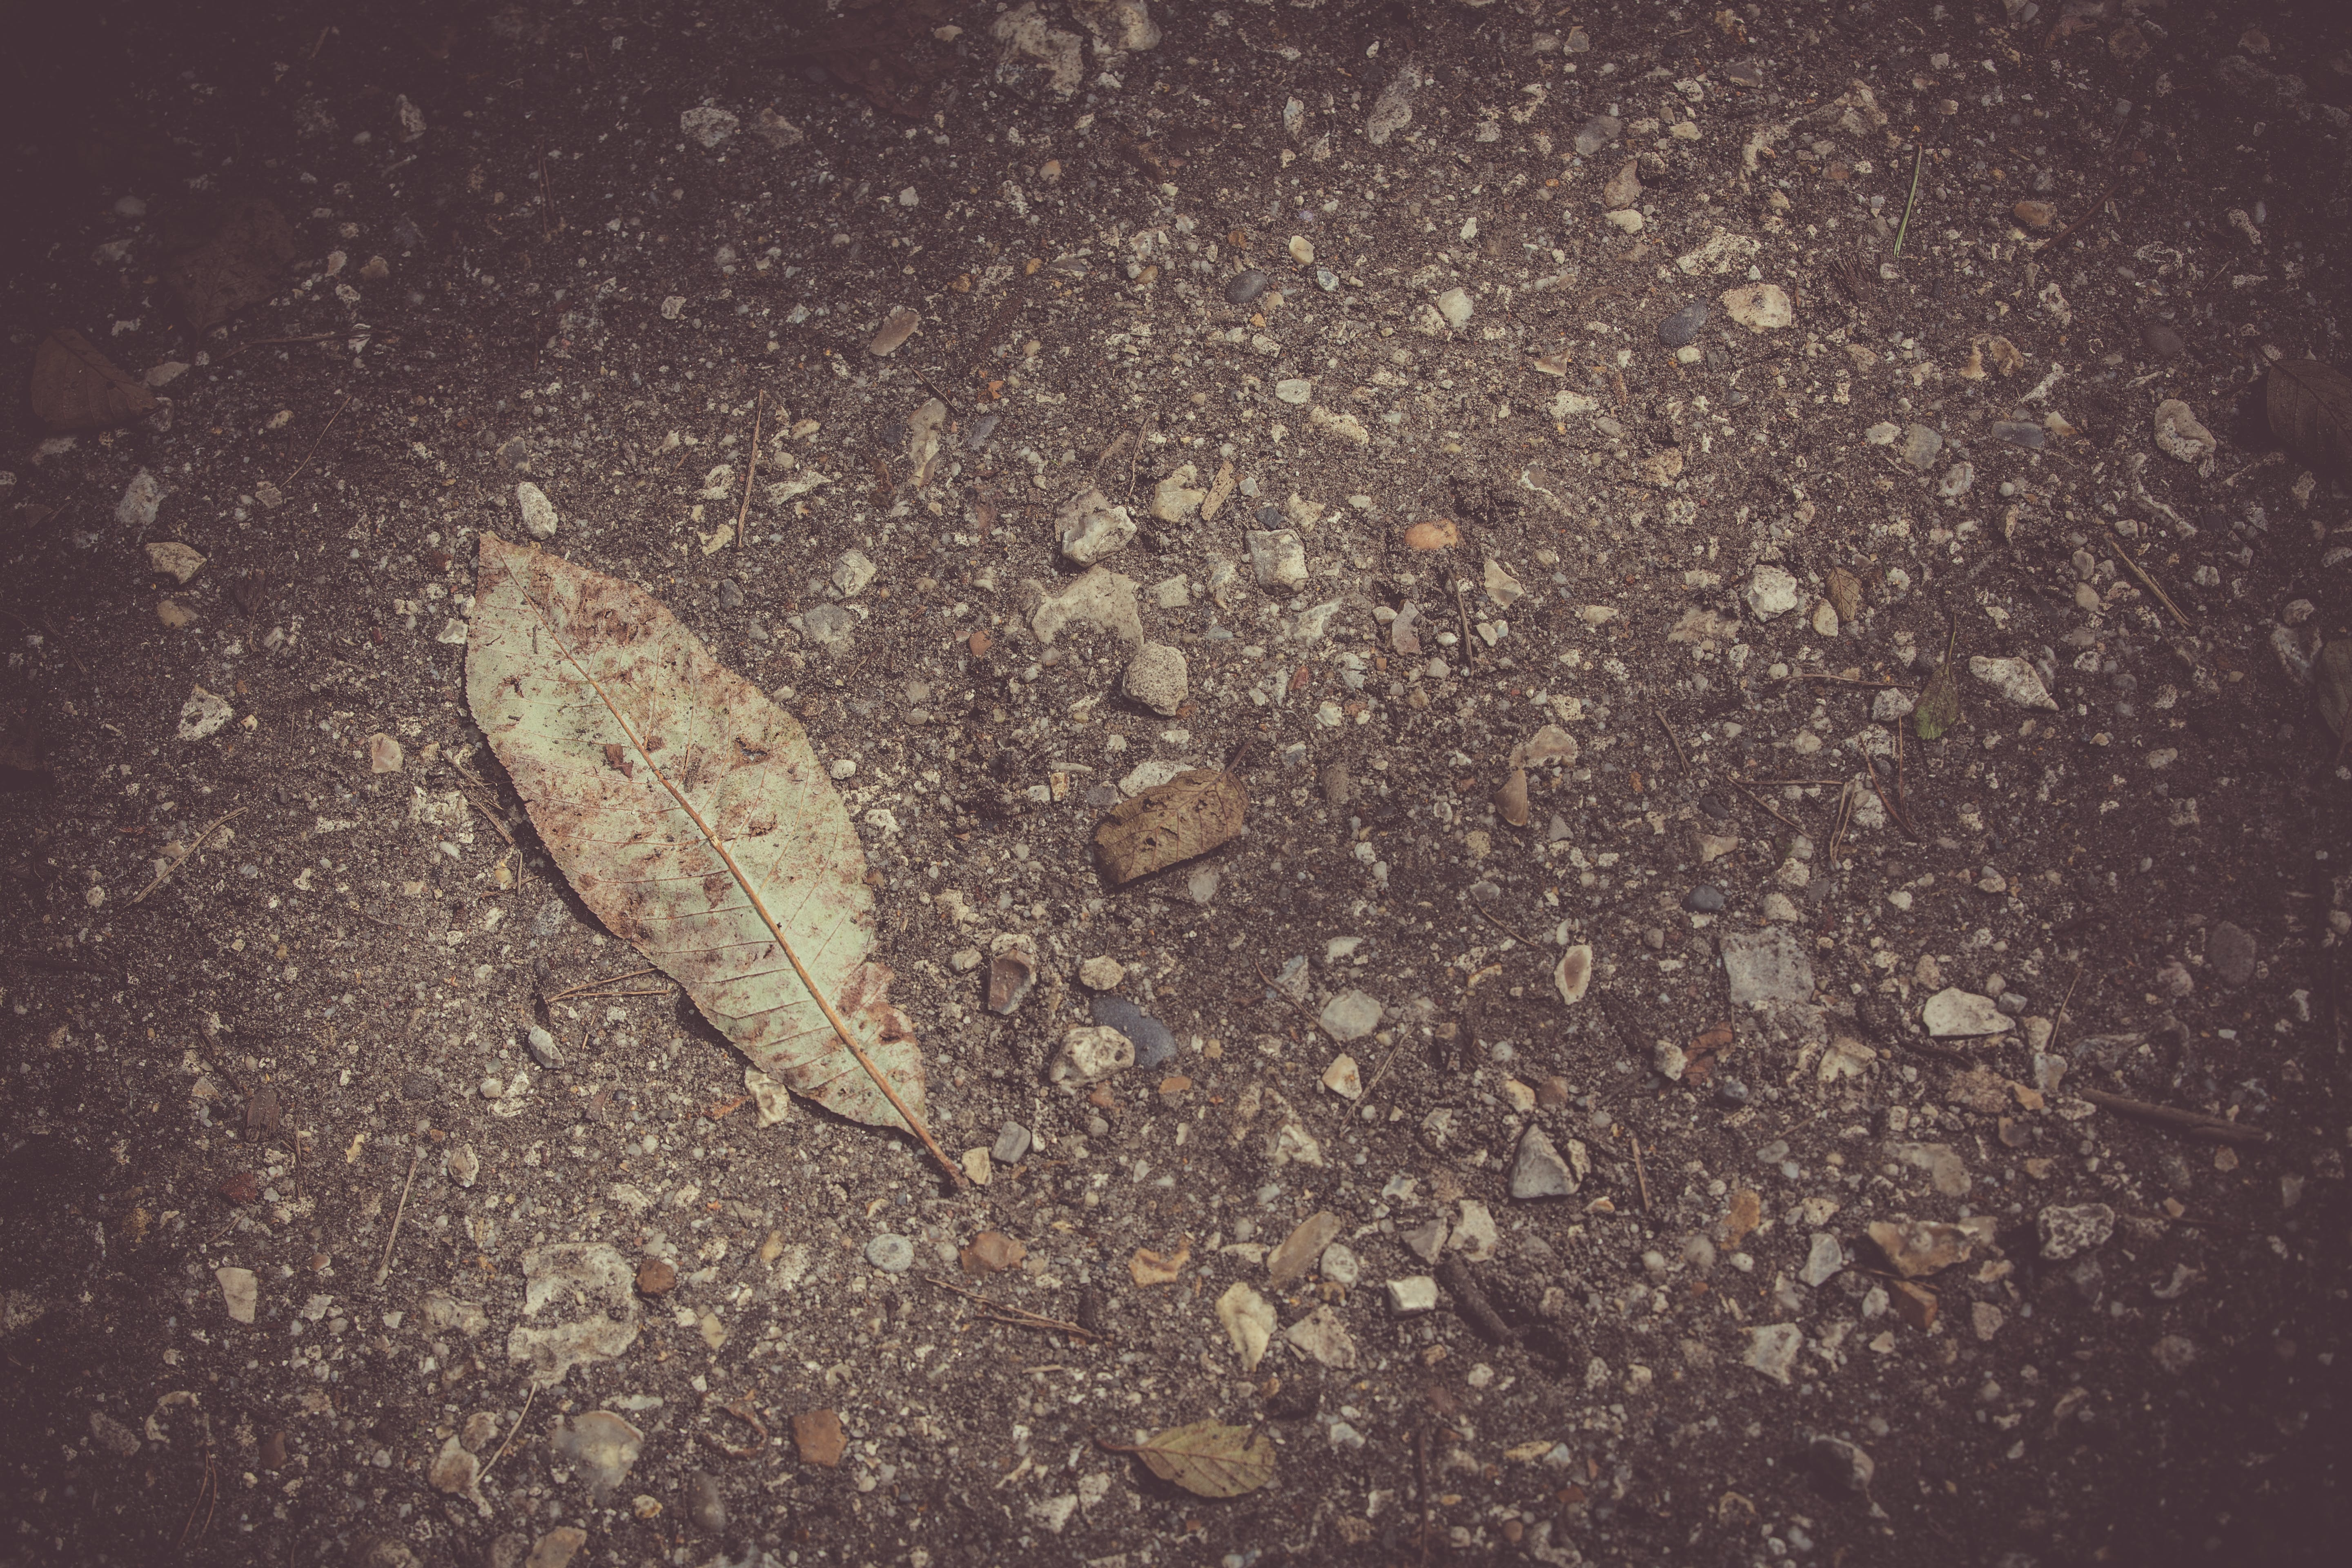 Free stock photo of dried leaves, floor, ground, stones